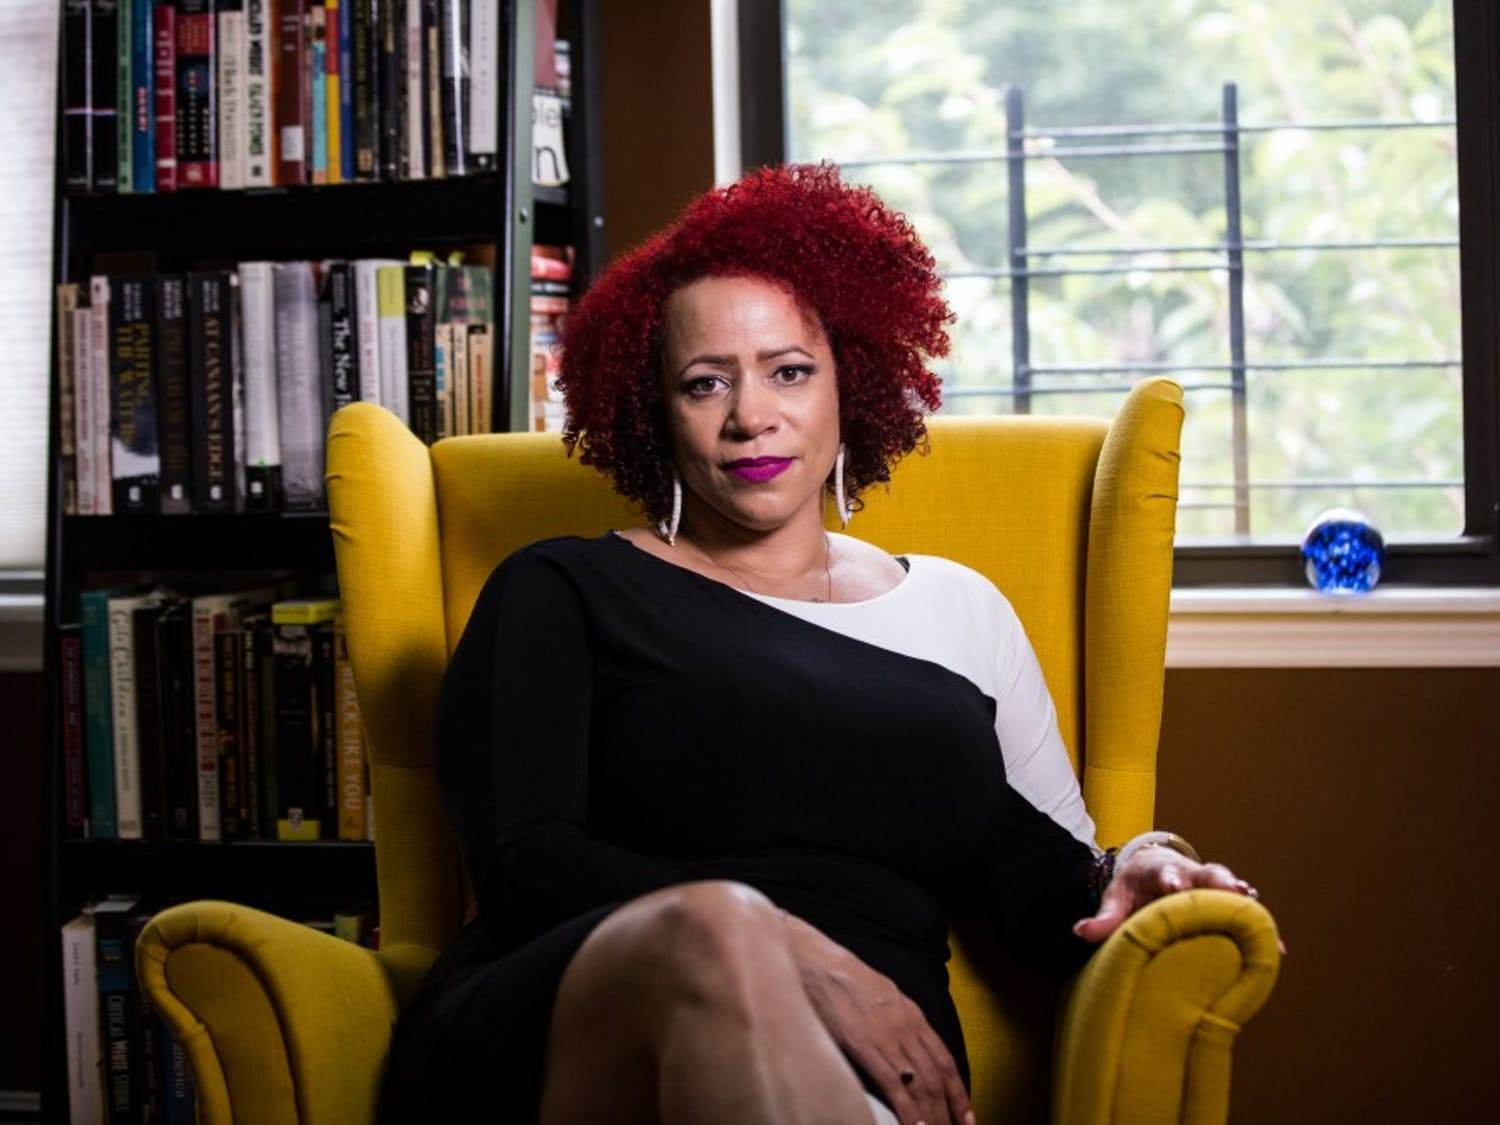 Photos are owned by the MacArthur Foundation and licensed under a Creative Commons license: CC-BY. Credit: John D. & Catherine T. MacArthur Foundation.  Photo is of Nikole Hannah-Jones